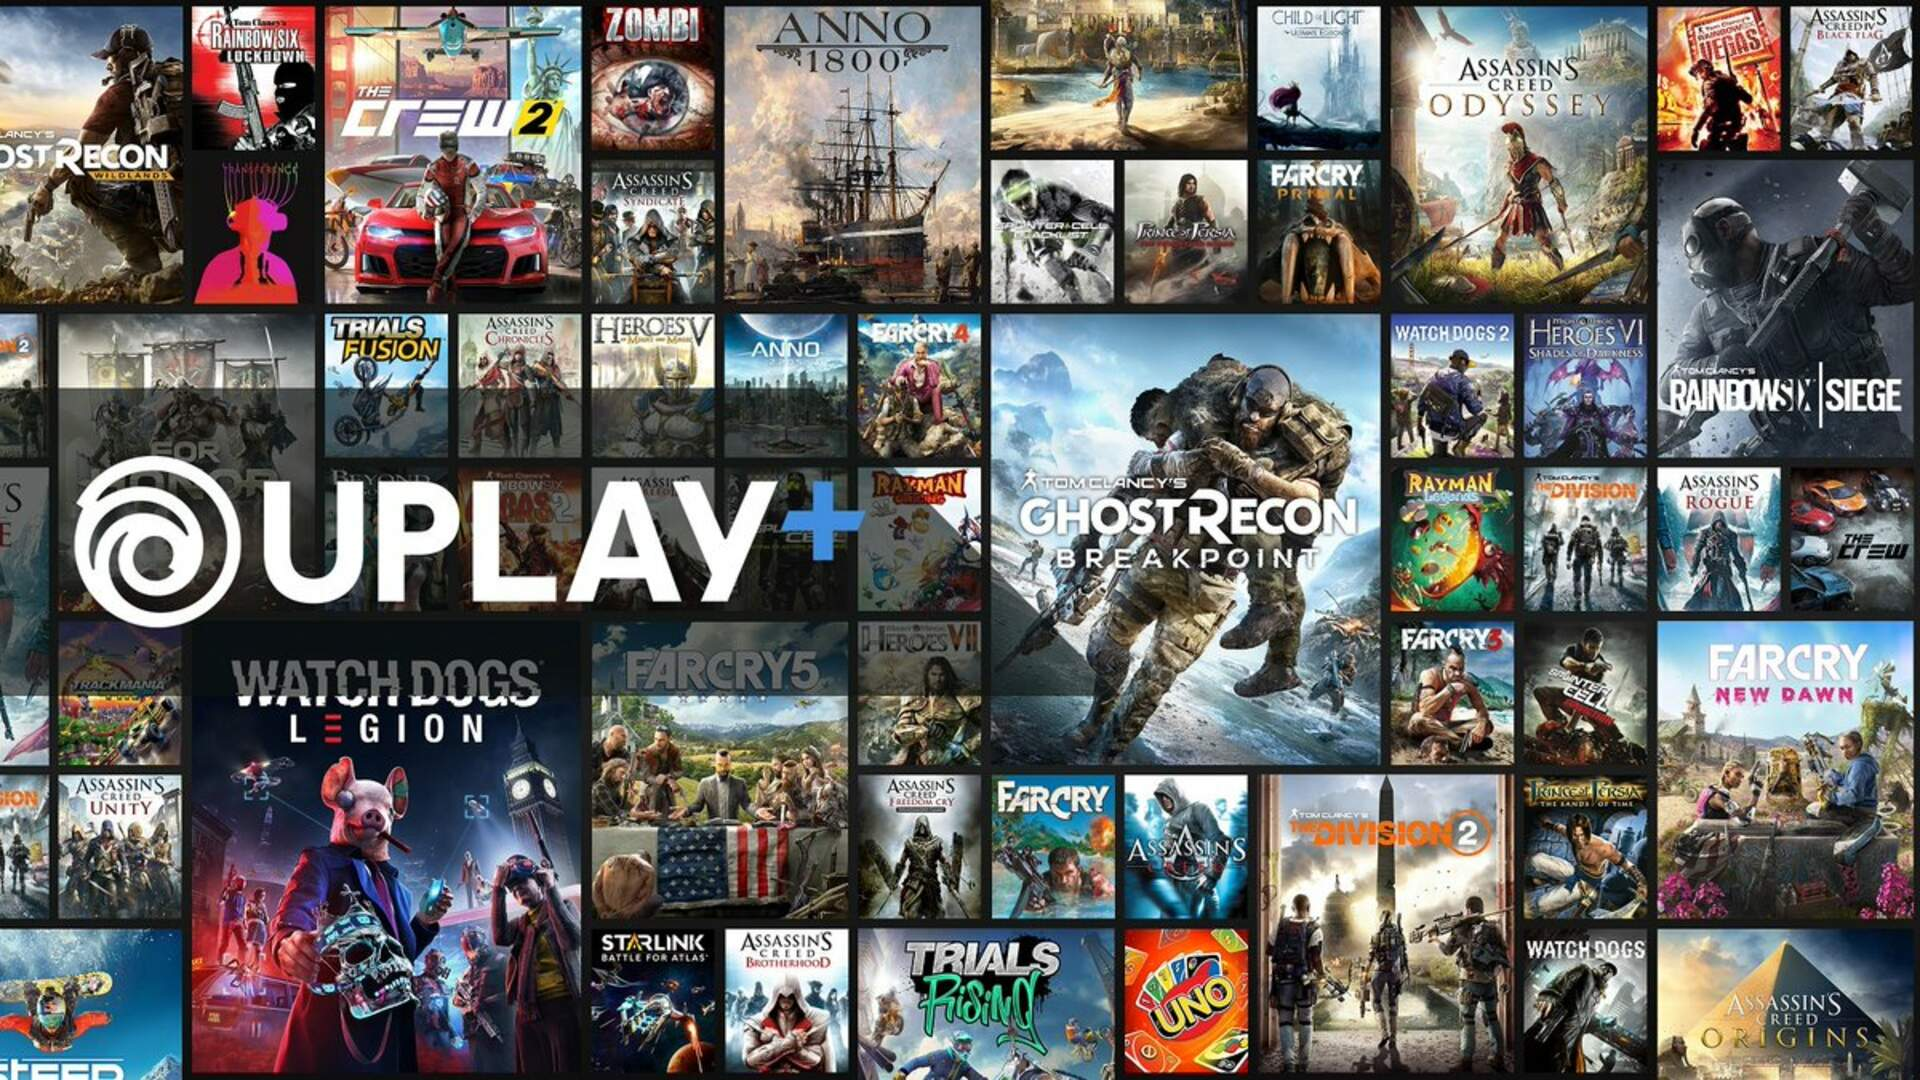 Ubisoft Announces Uplay+, Its Own Subscription Service Like Xbox Game Pass